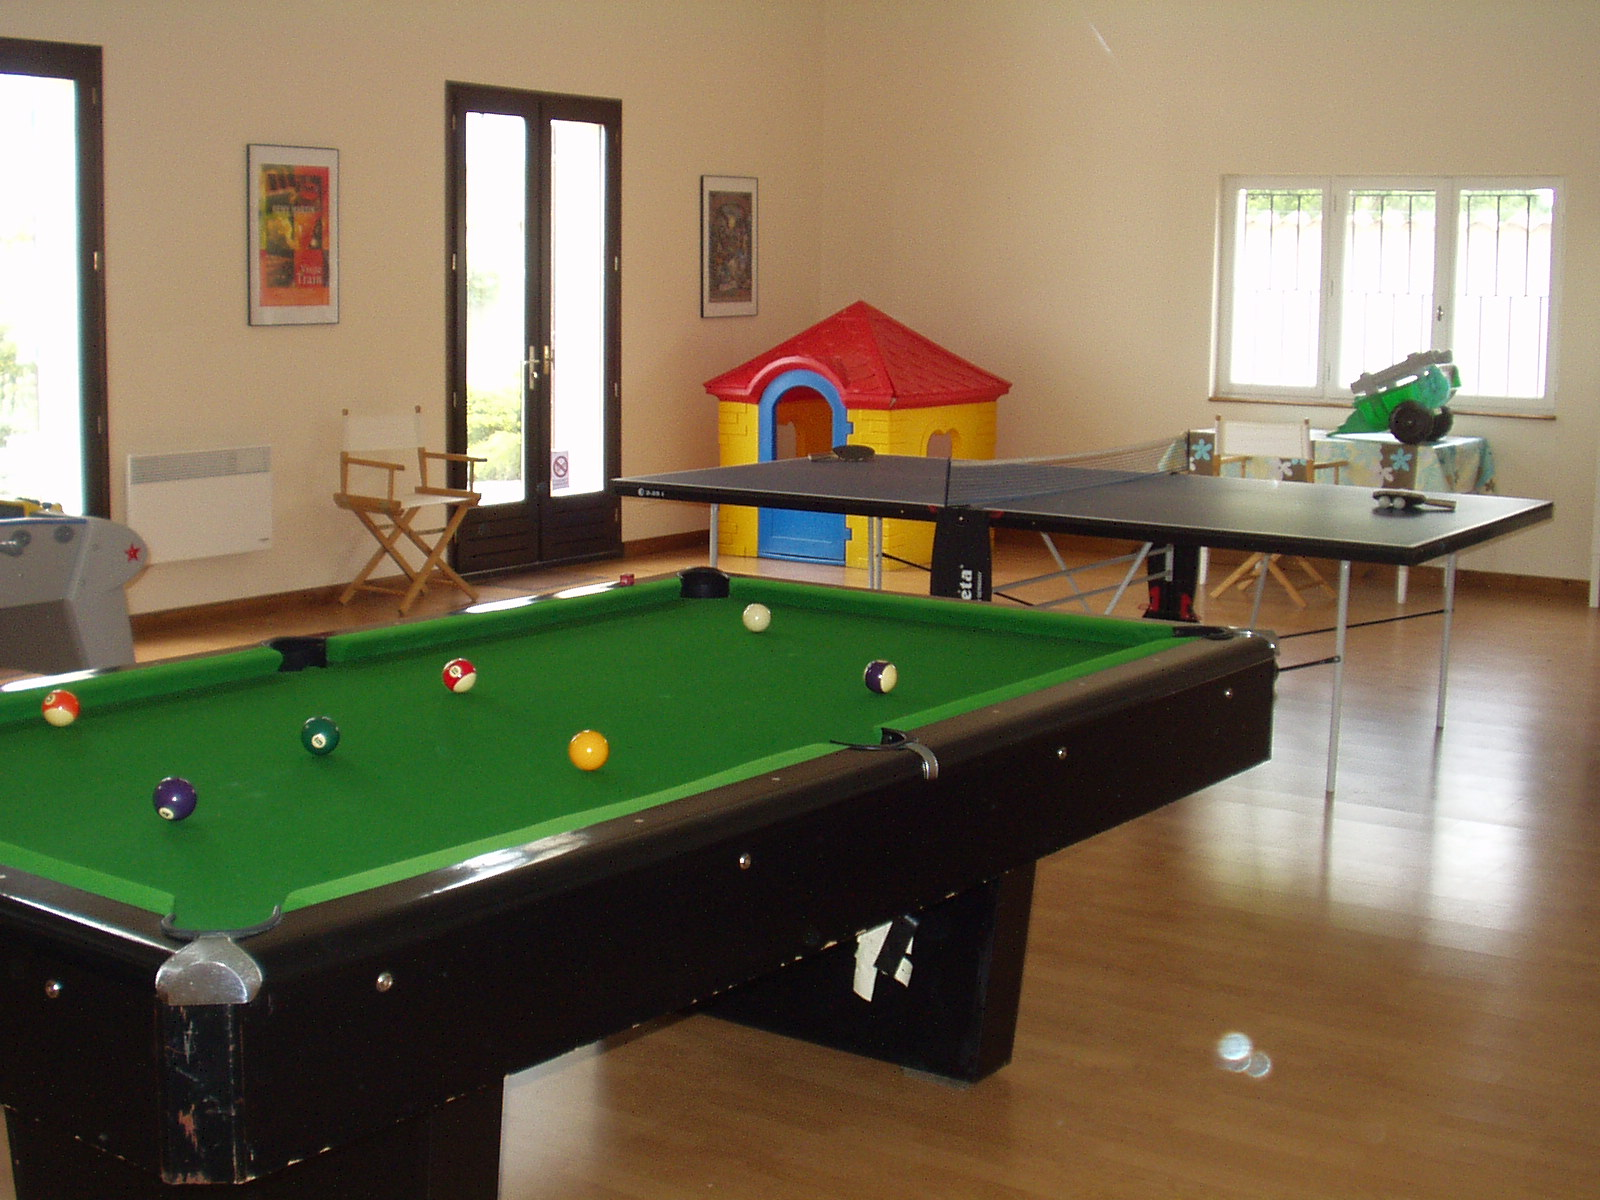 The Games Room   Table Tennis. American Pool, table football, board games, bats and balls for use in the grounds........ we provide everything to keep the family entertained.